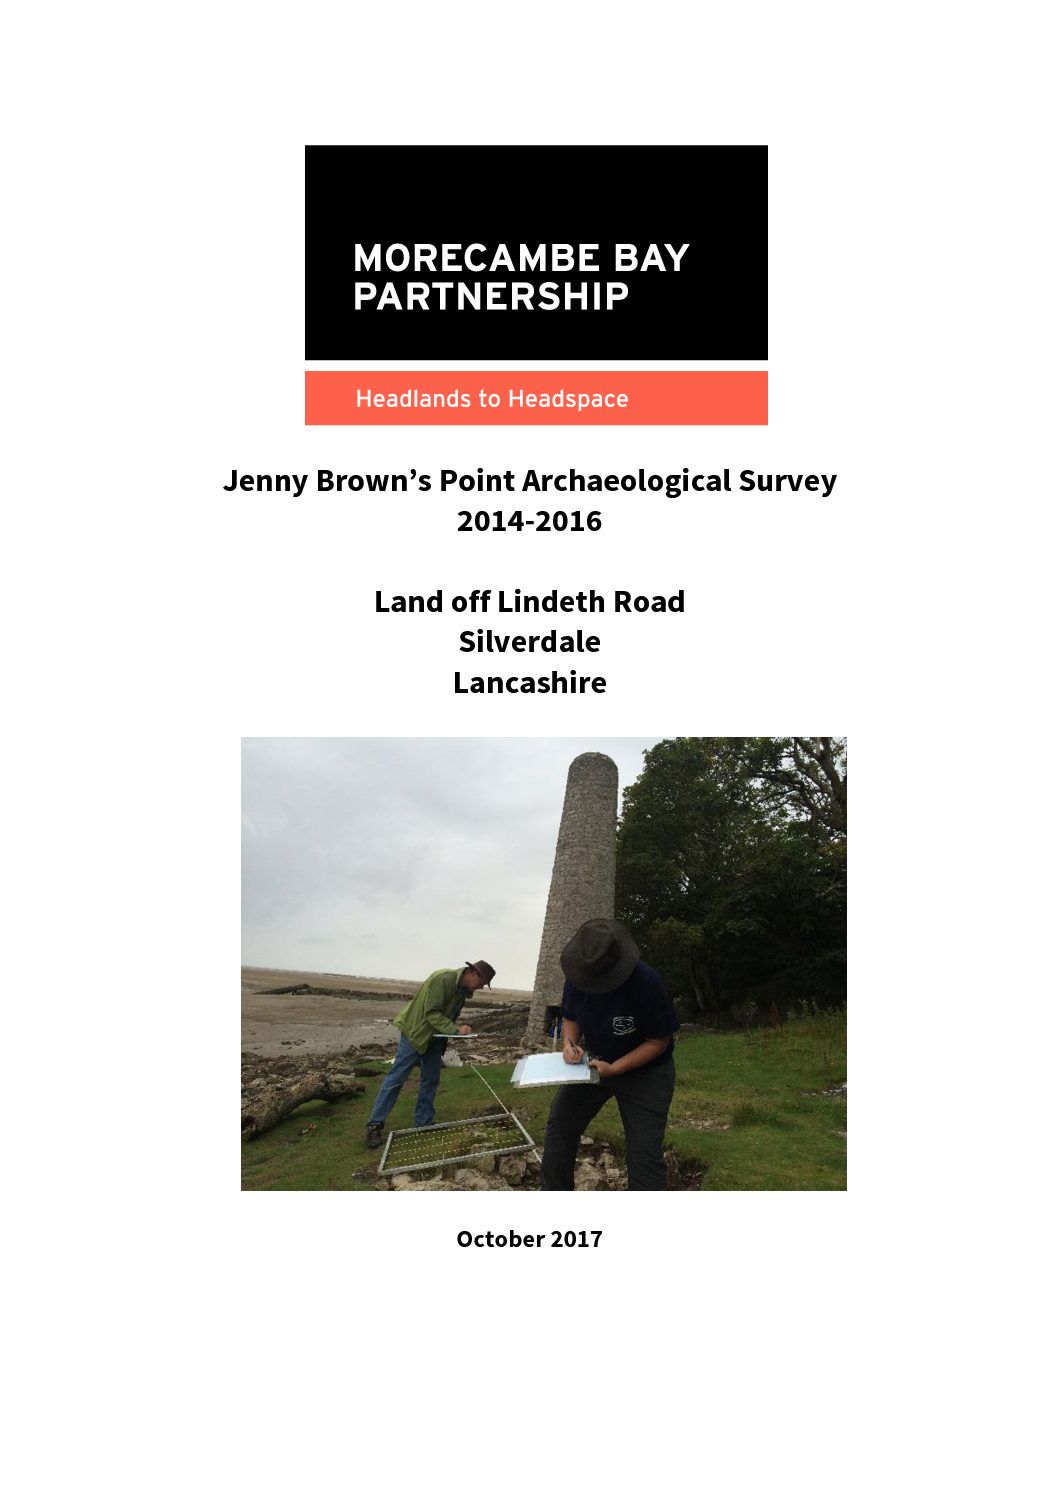 Jenny Brown's Point Archaeological Survey 2014-2016